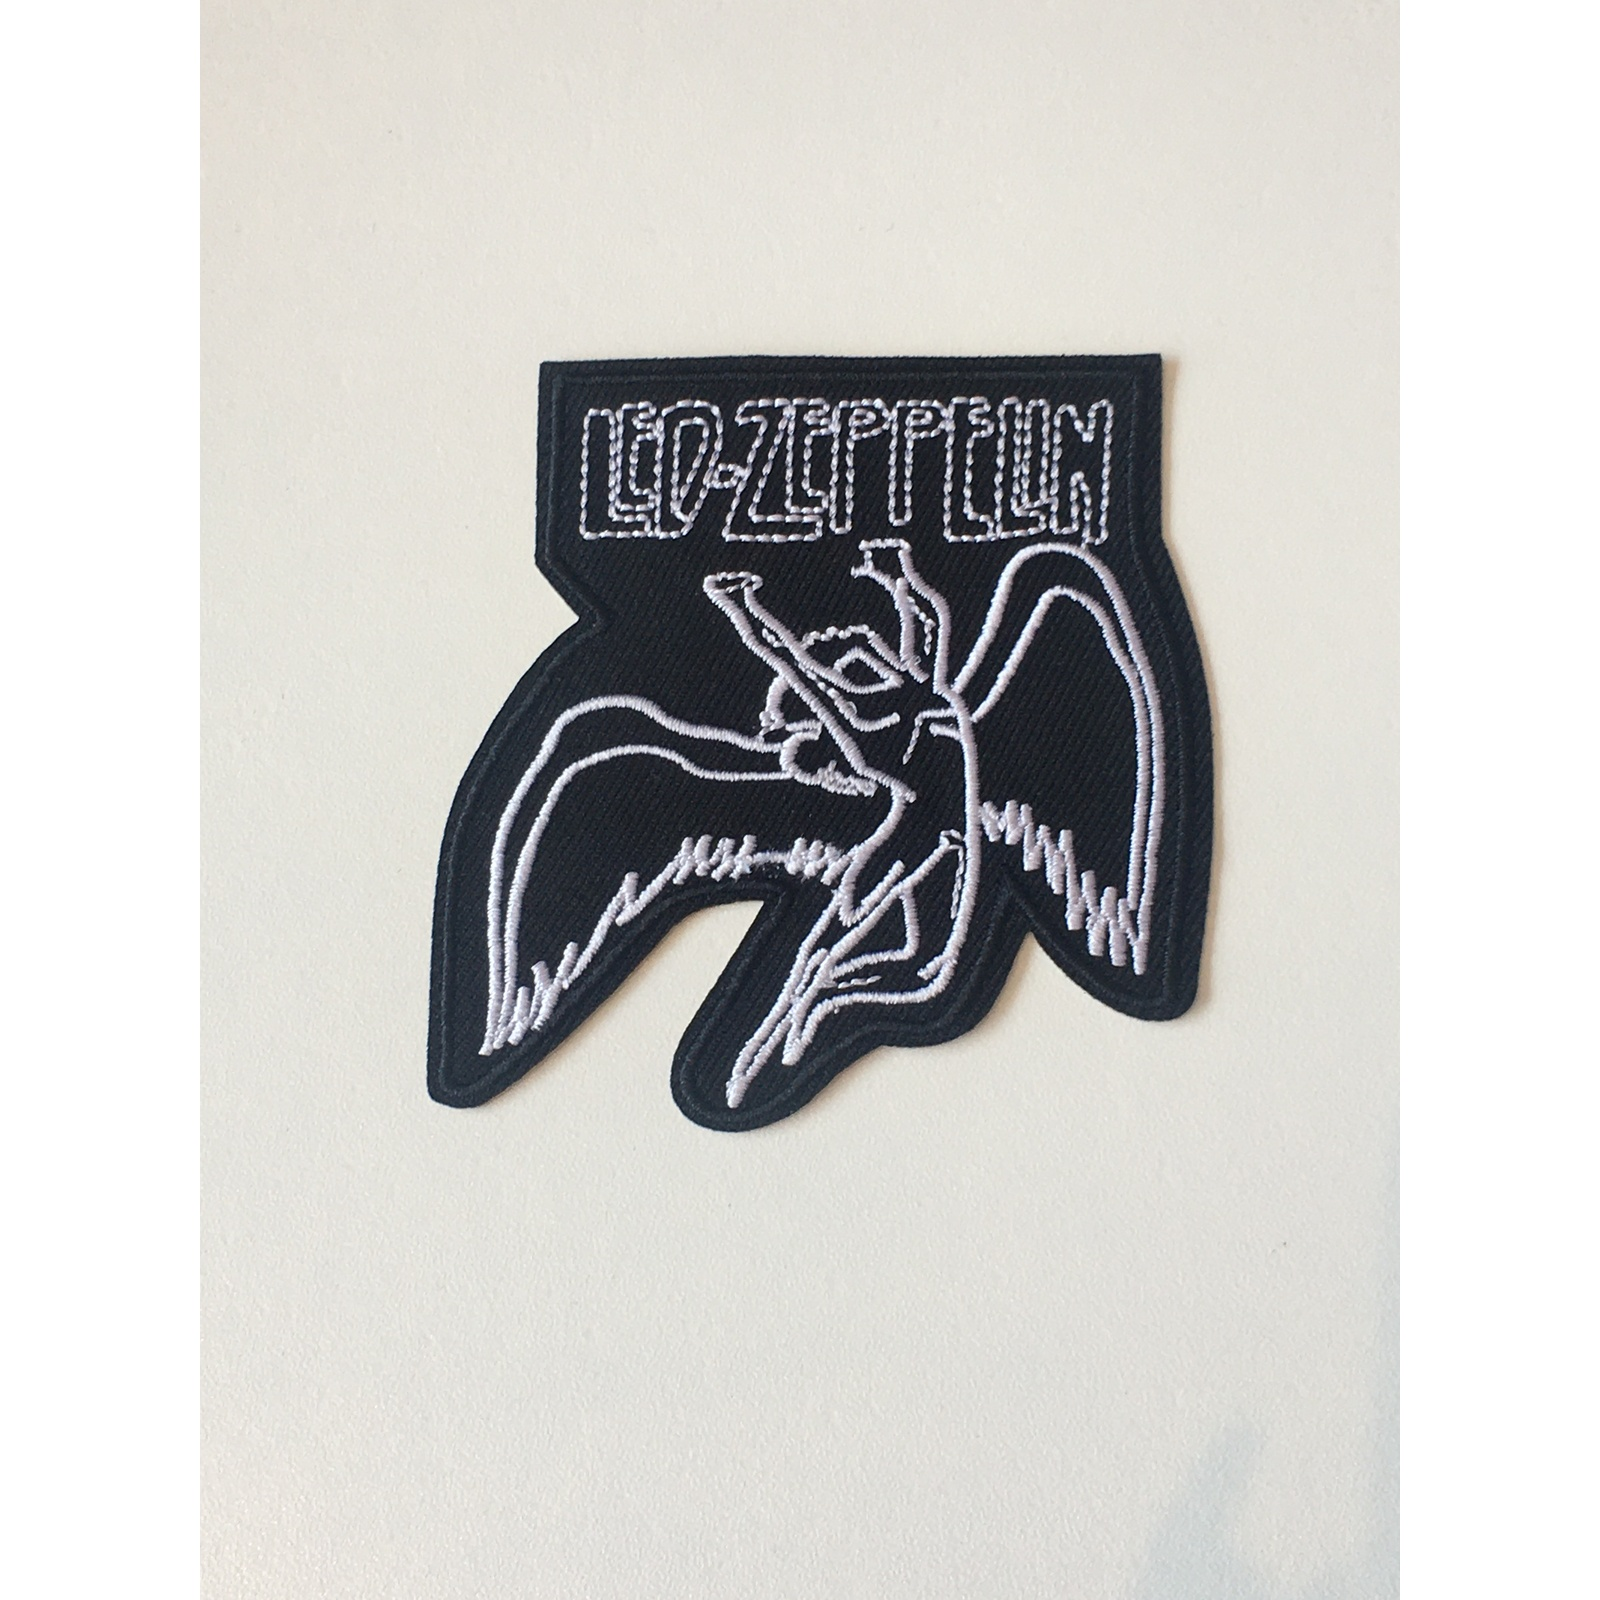 LED ZEPPELIN IRON ON BAND PATCH ANGEL WITH OUTLINE TEXT